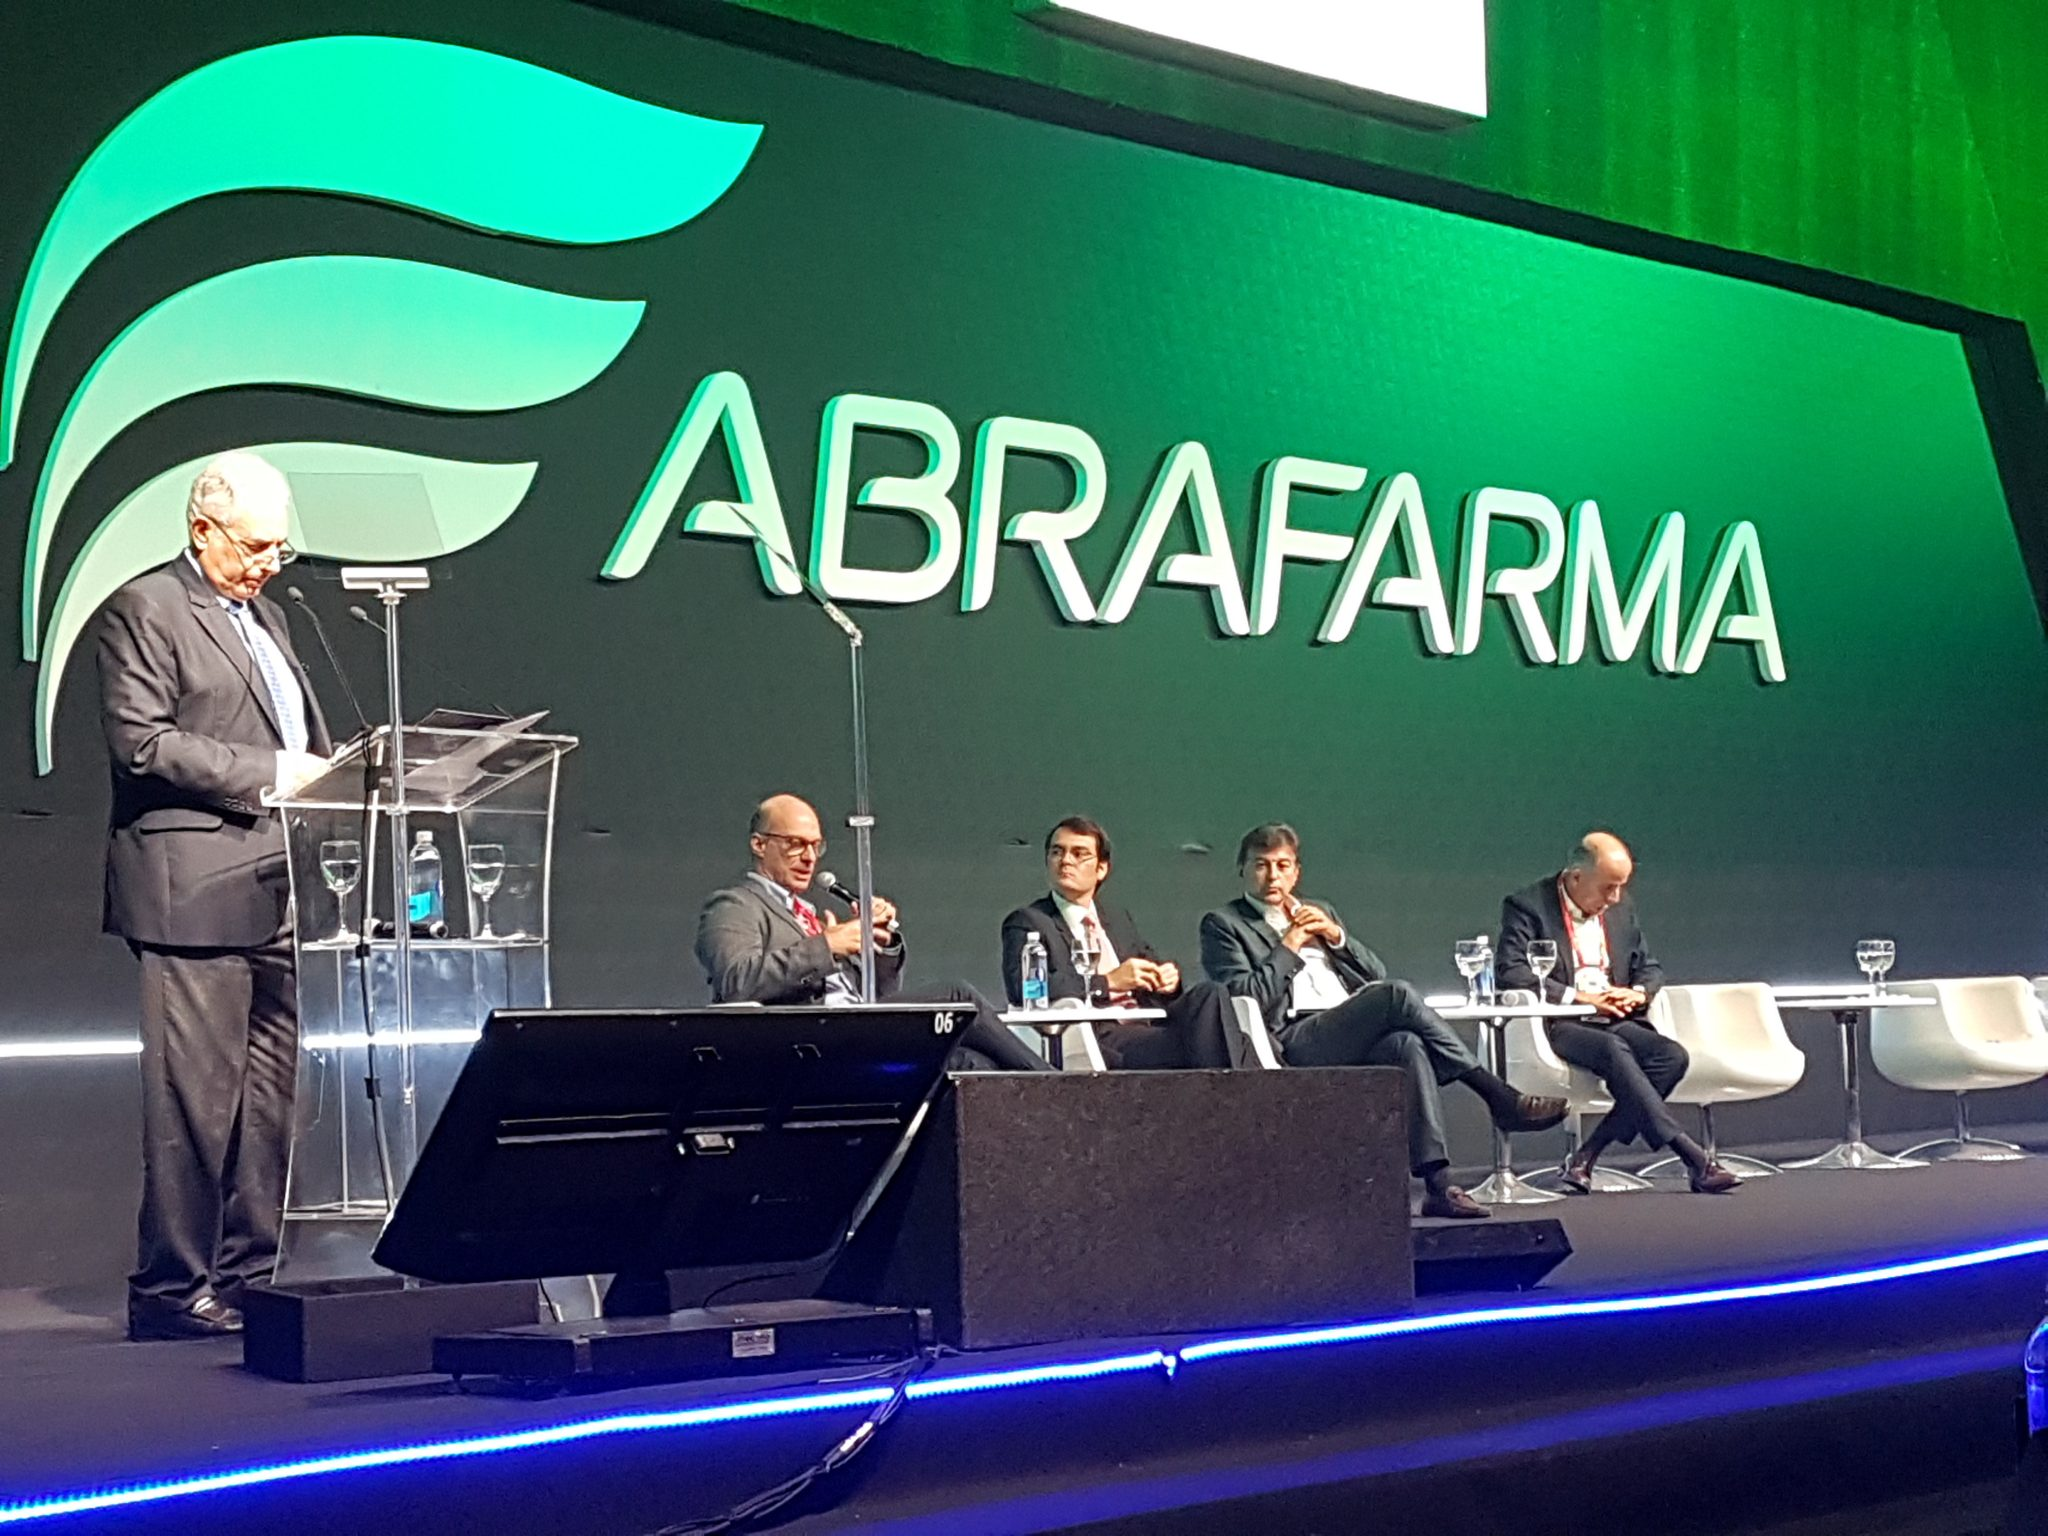 Abrafarma Future Trends